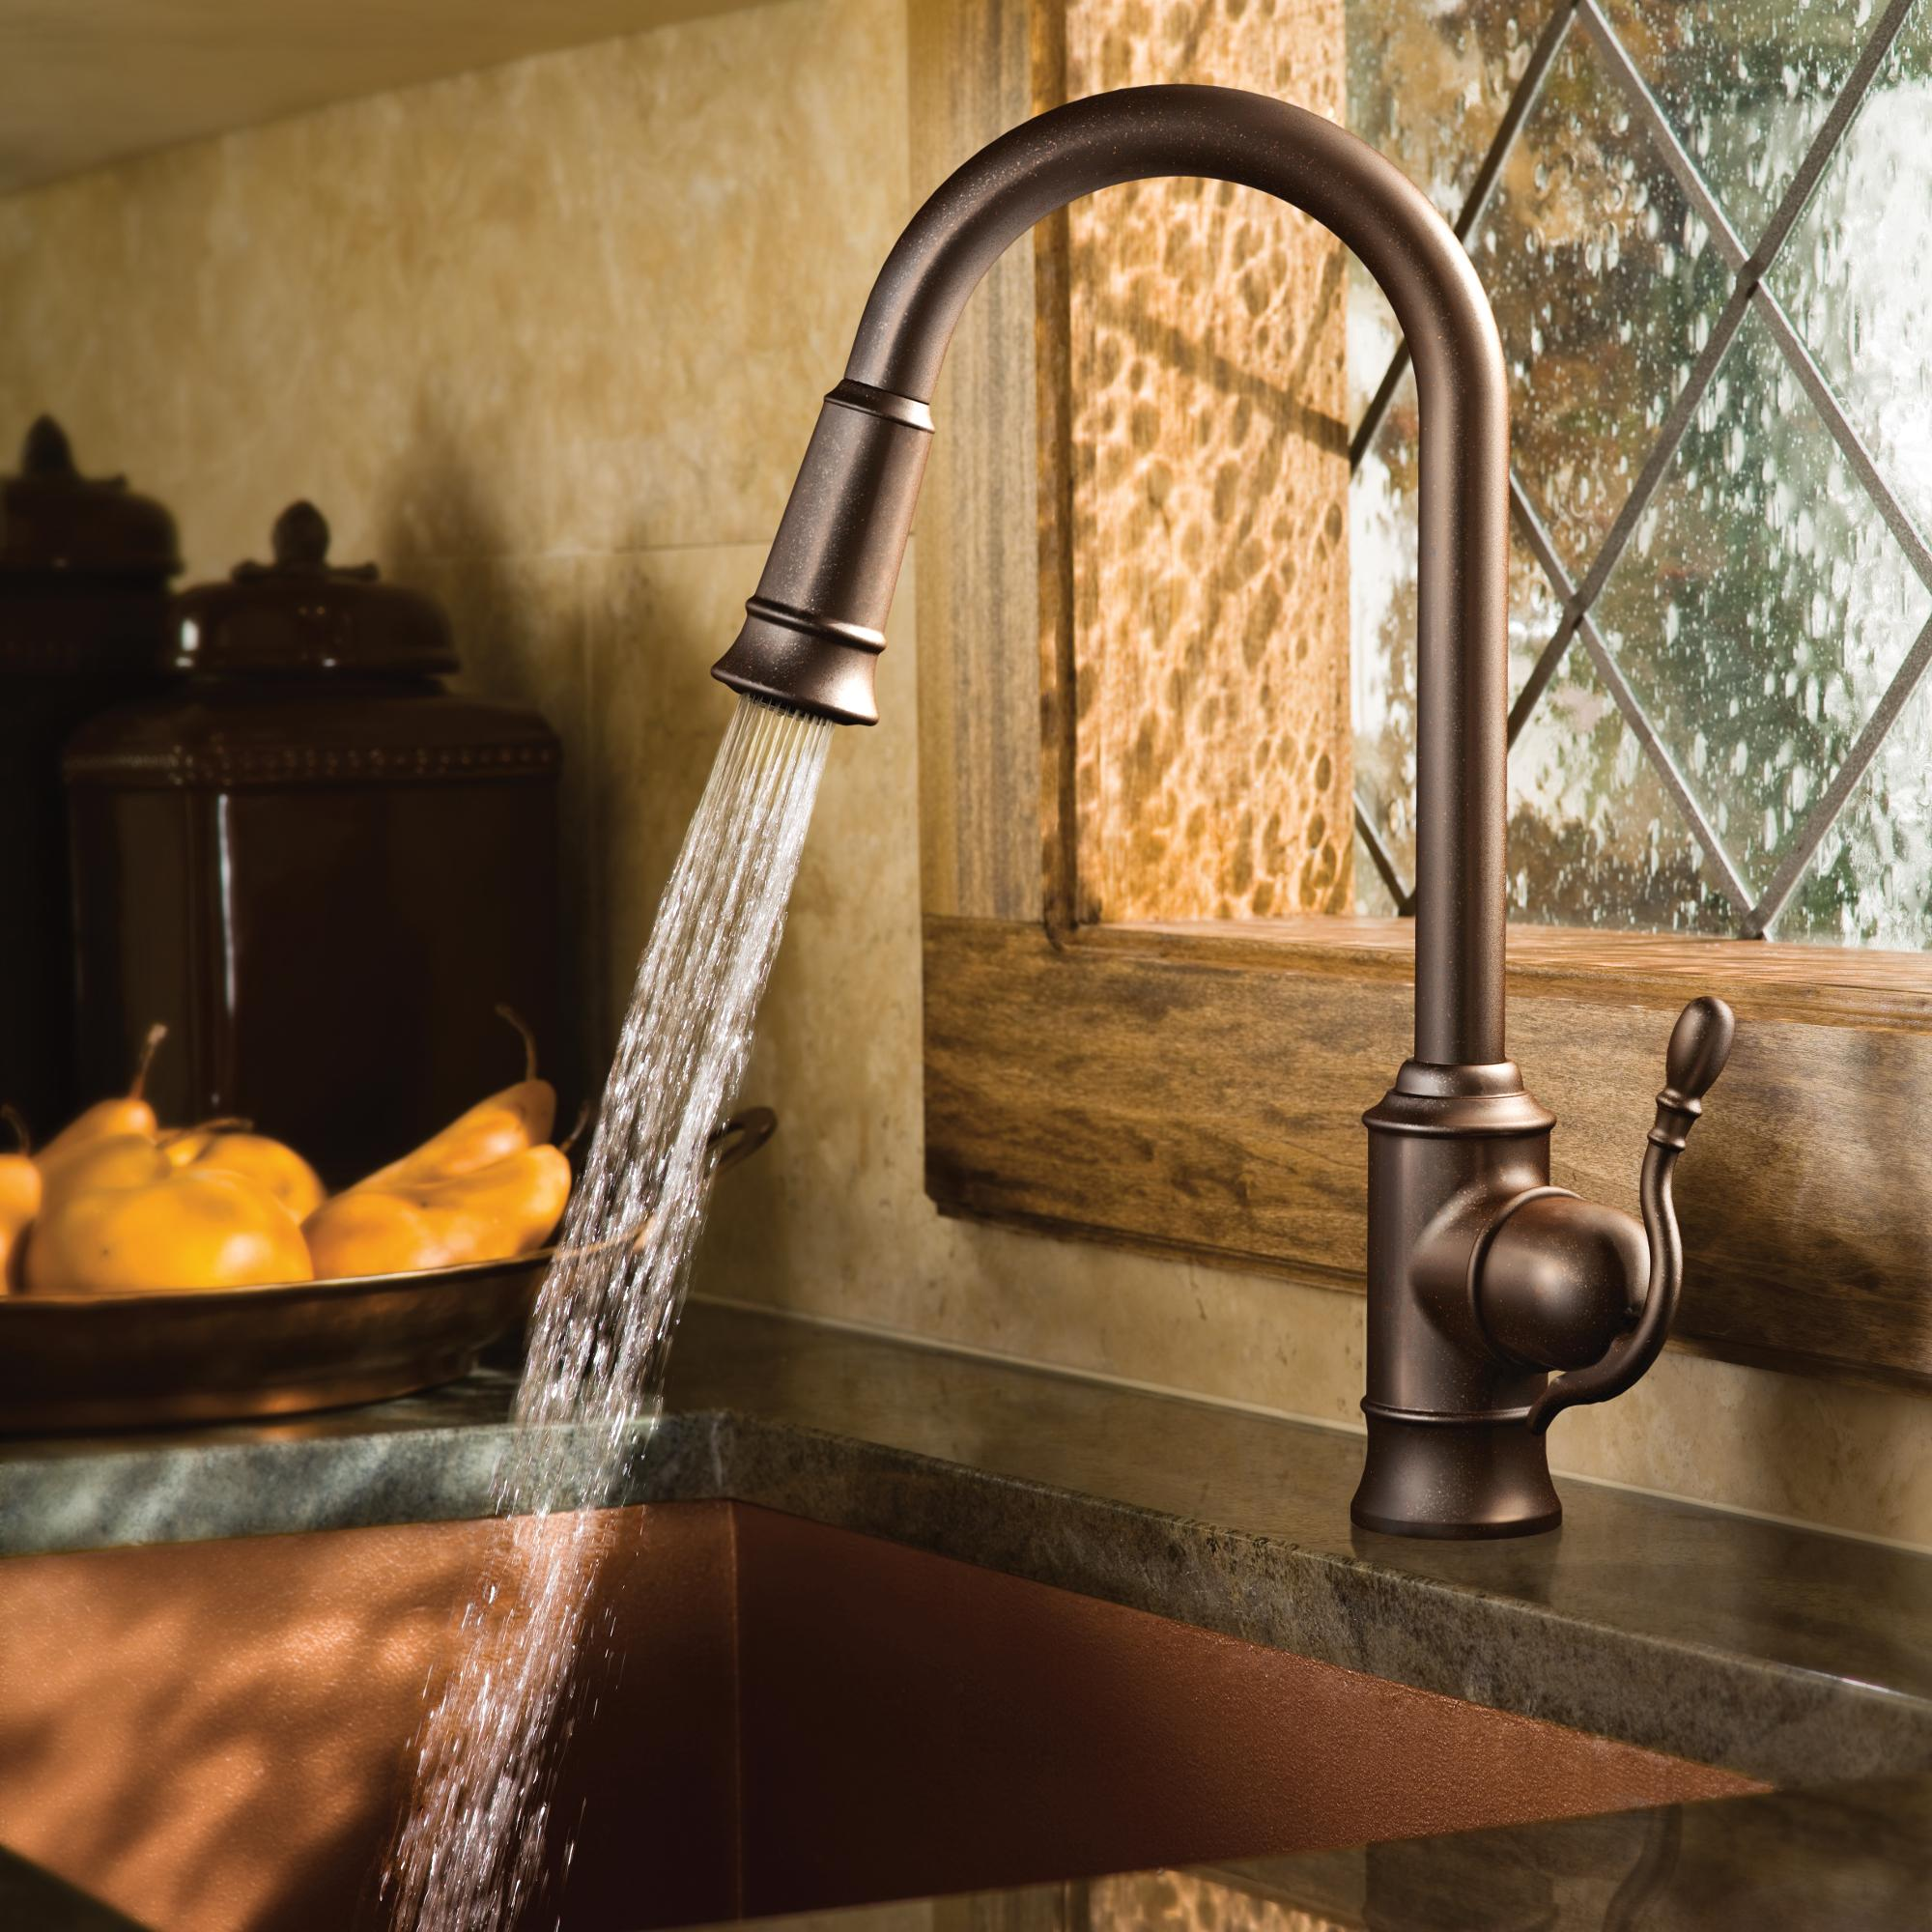 Moen Kitchen Faucets - 100 images - Moen Banbury Kitchen Faucet ...